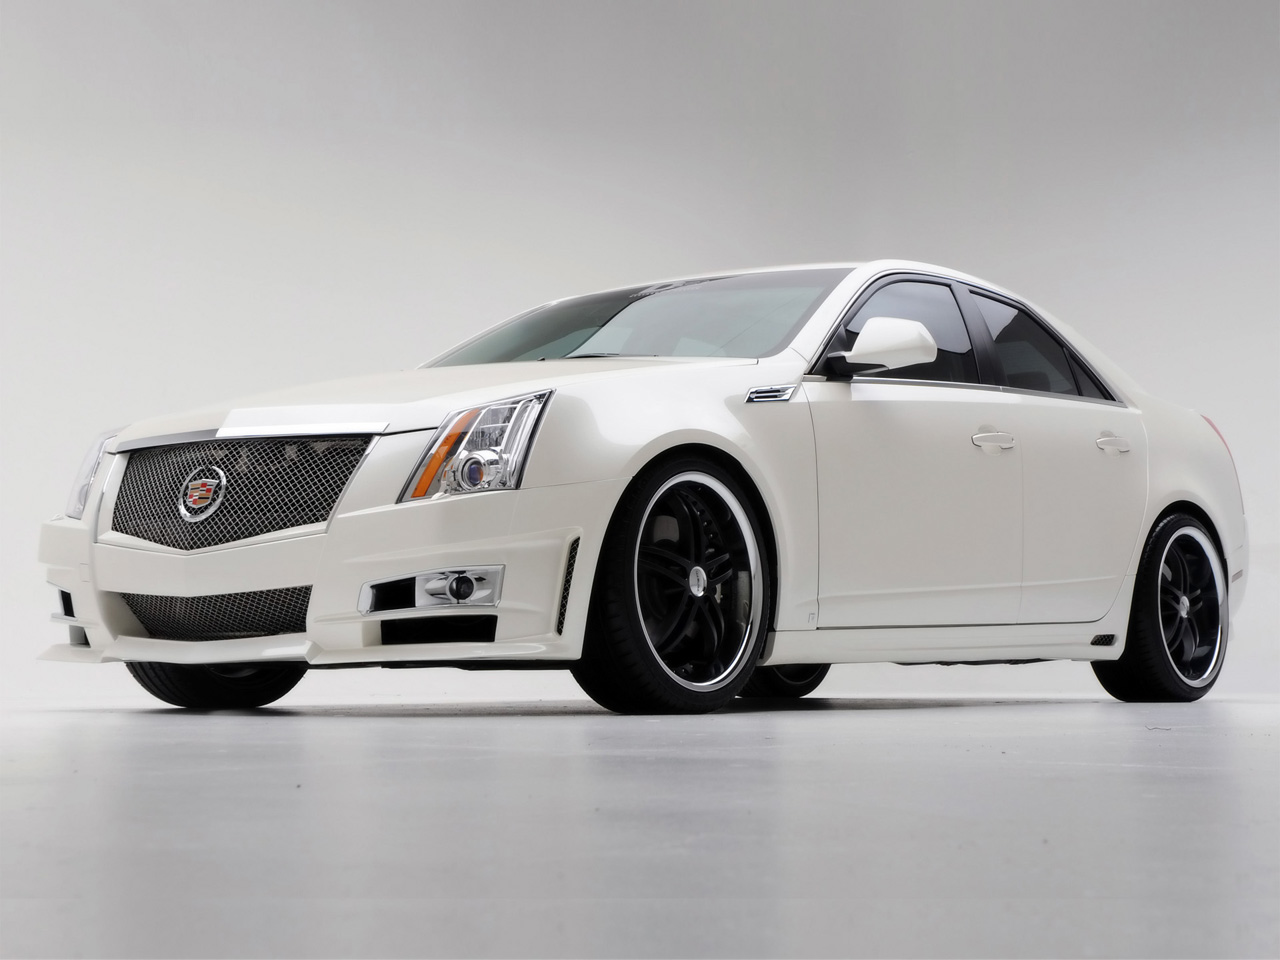 2008-D3-Cadillac-CTS-Front-And-Side-1280x960-1-